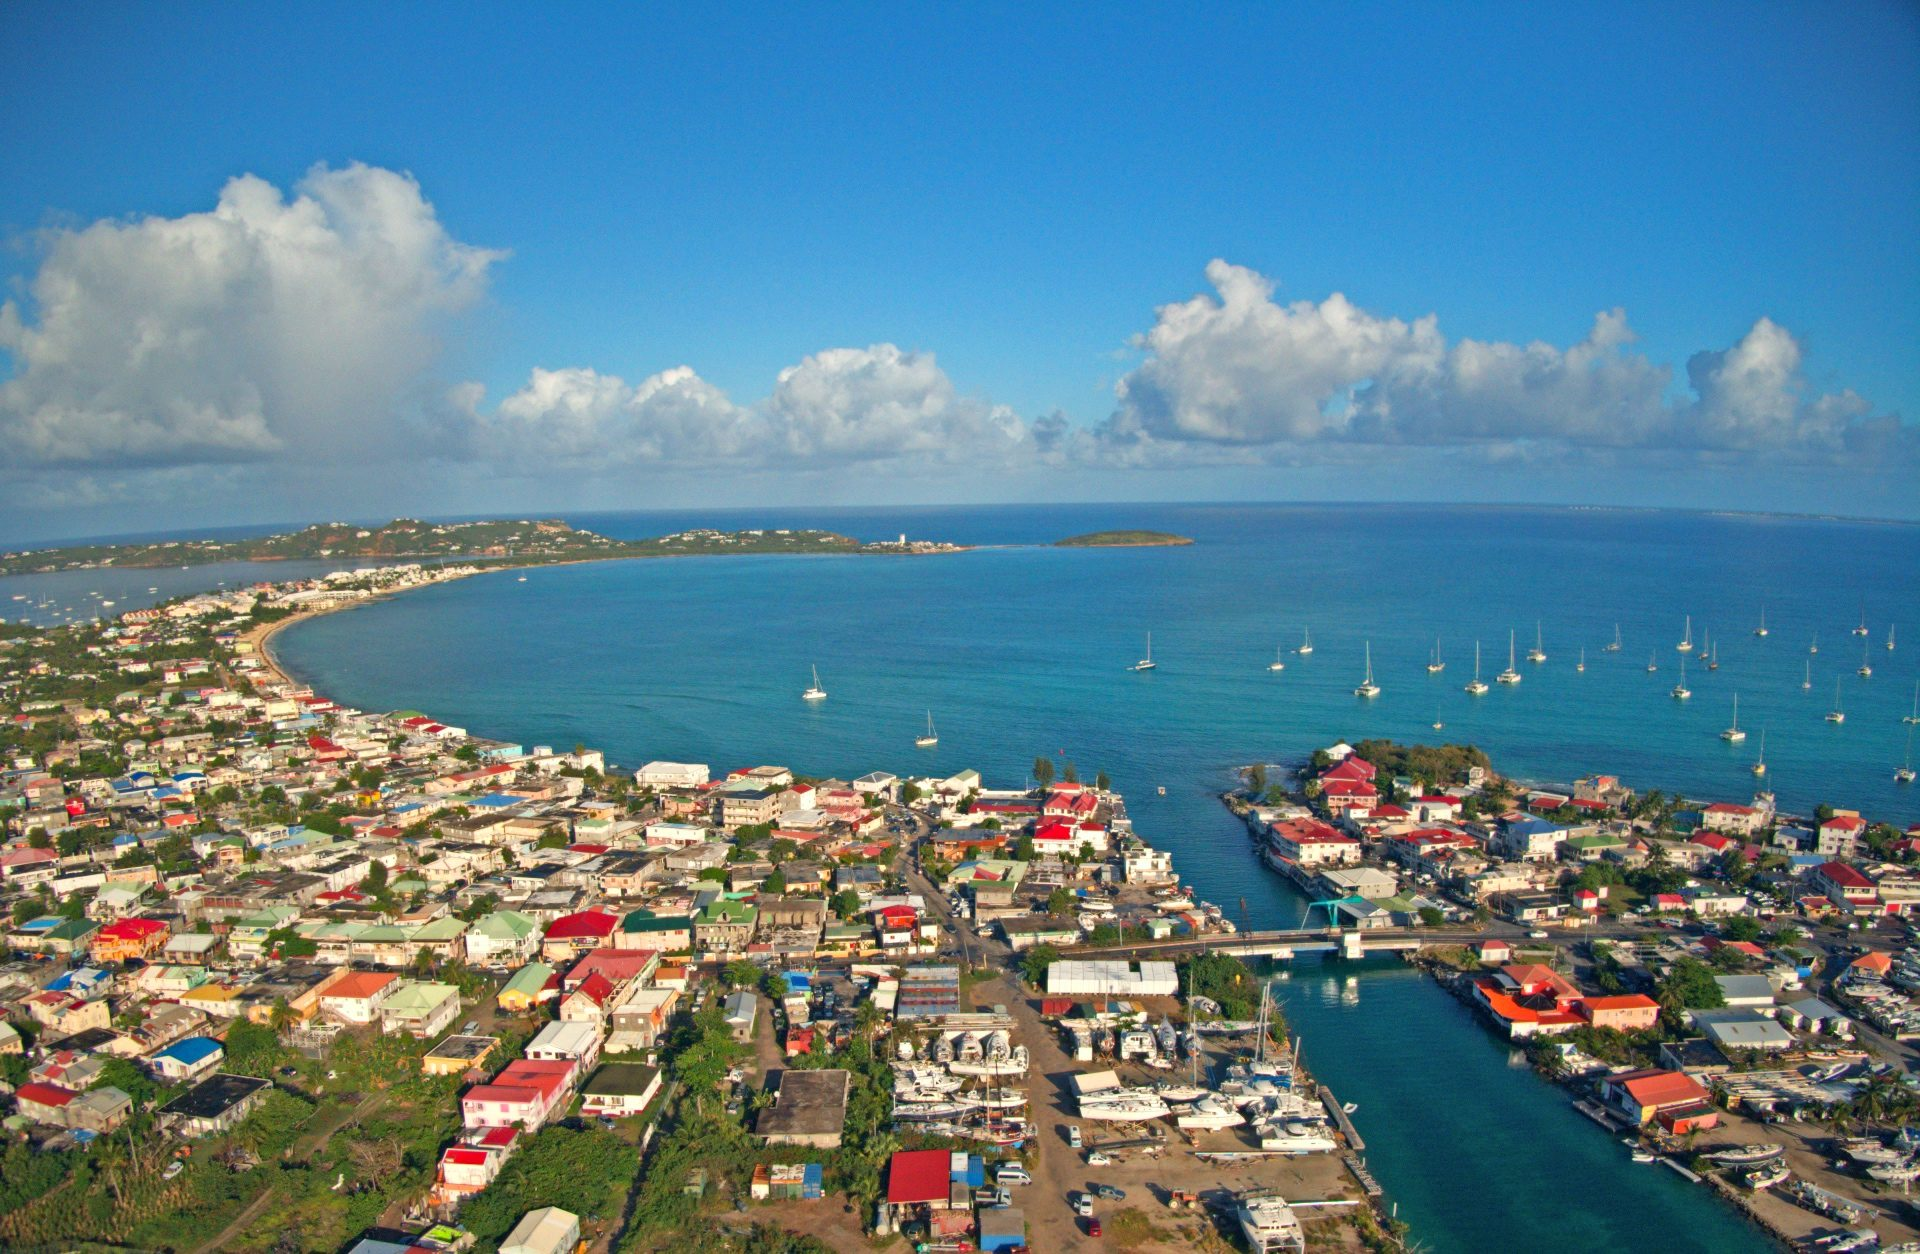 St Martin aerial view